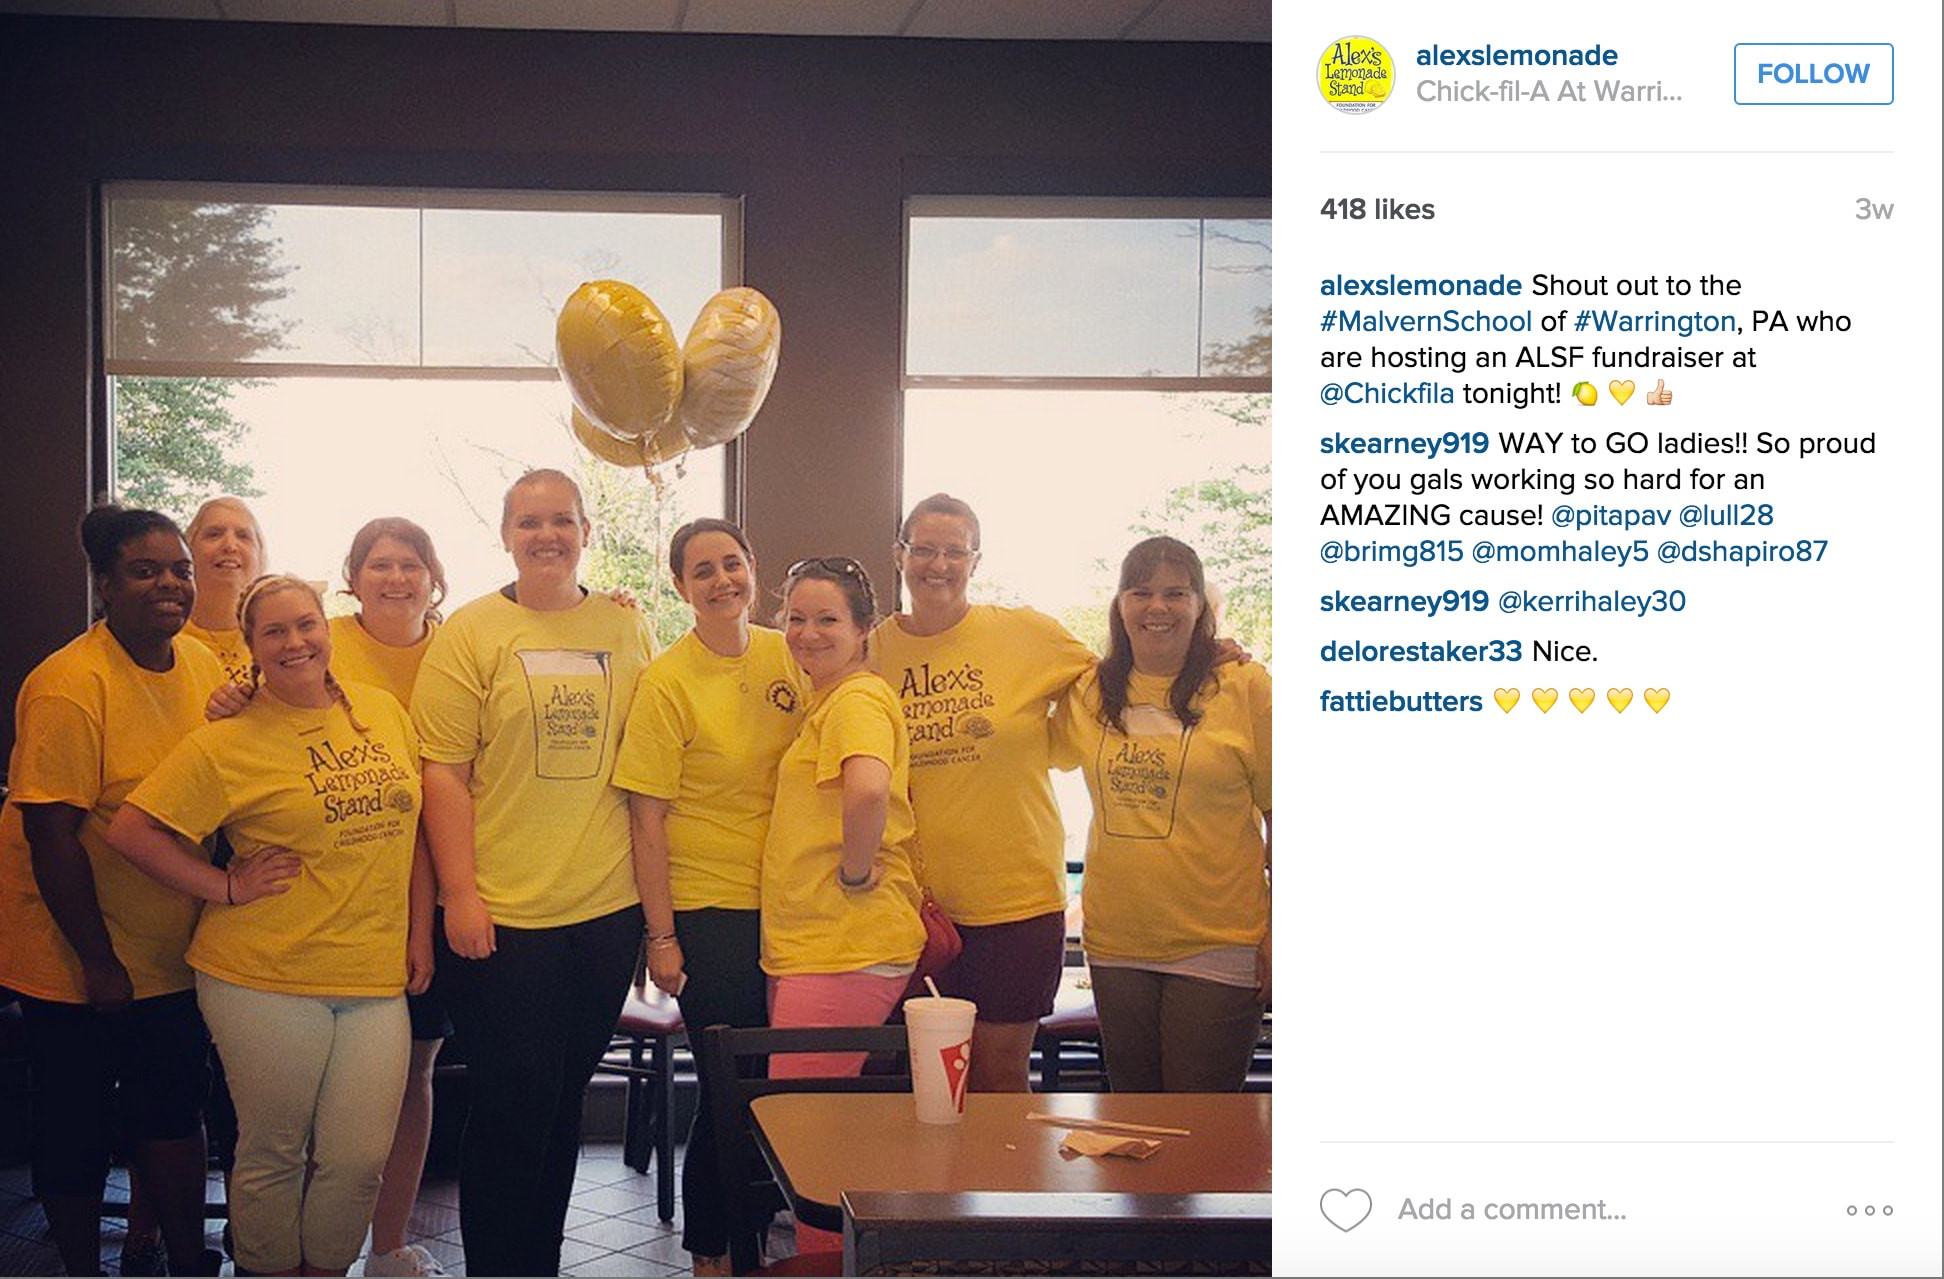 Alex_s_Lemonade___alexslemonade__•_Instagram_photos_and_videos